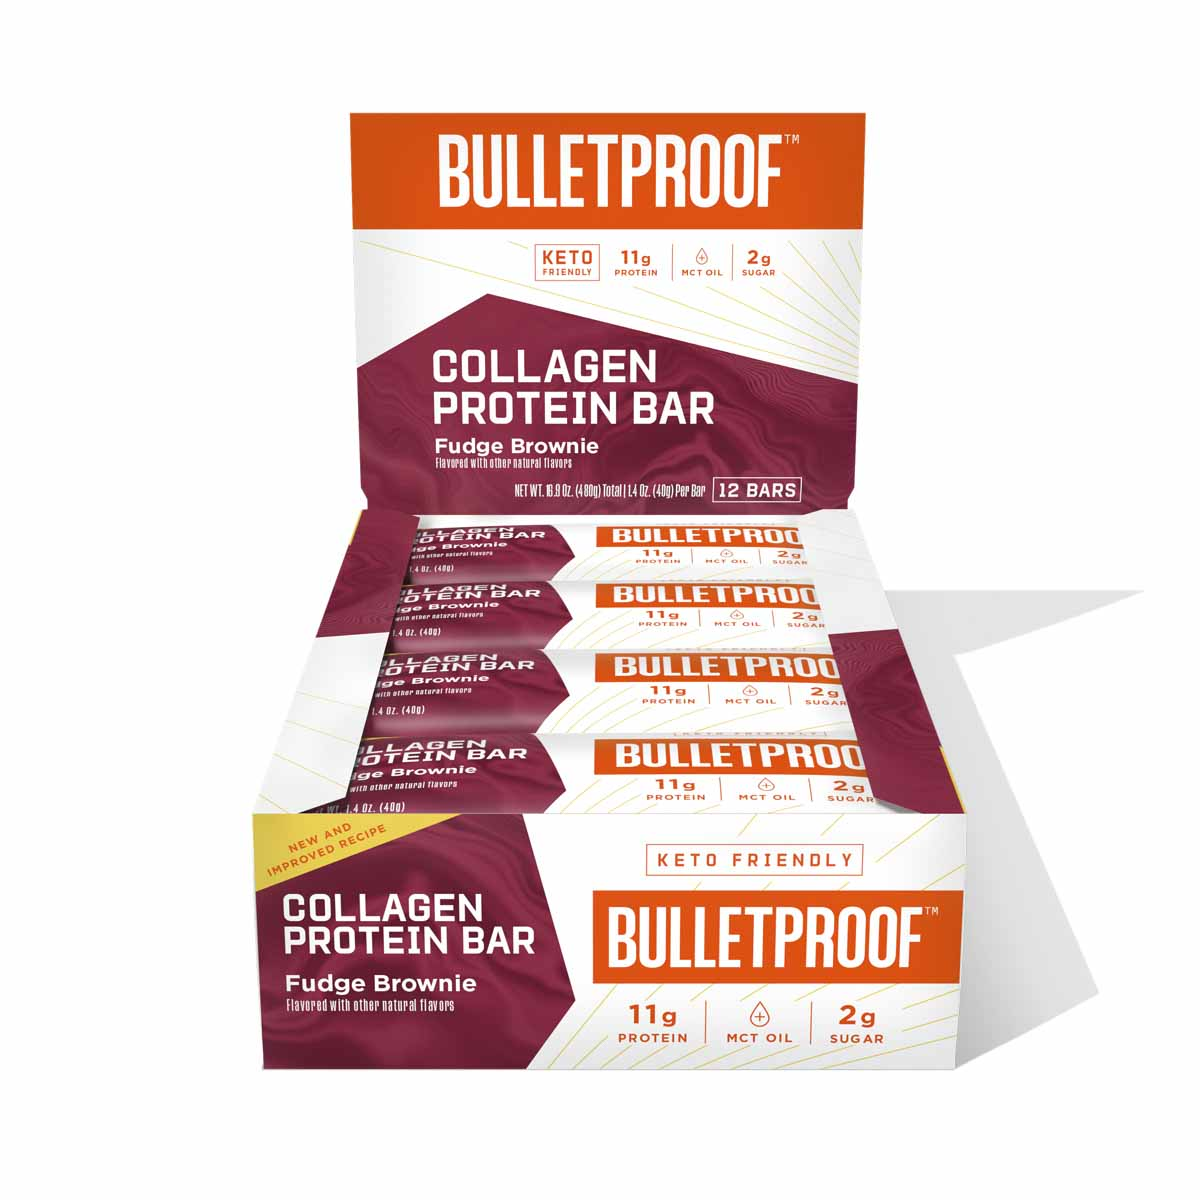 Bulletproof Fudge Brownie Collagen Protein Bar (12 Pack)